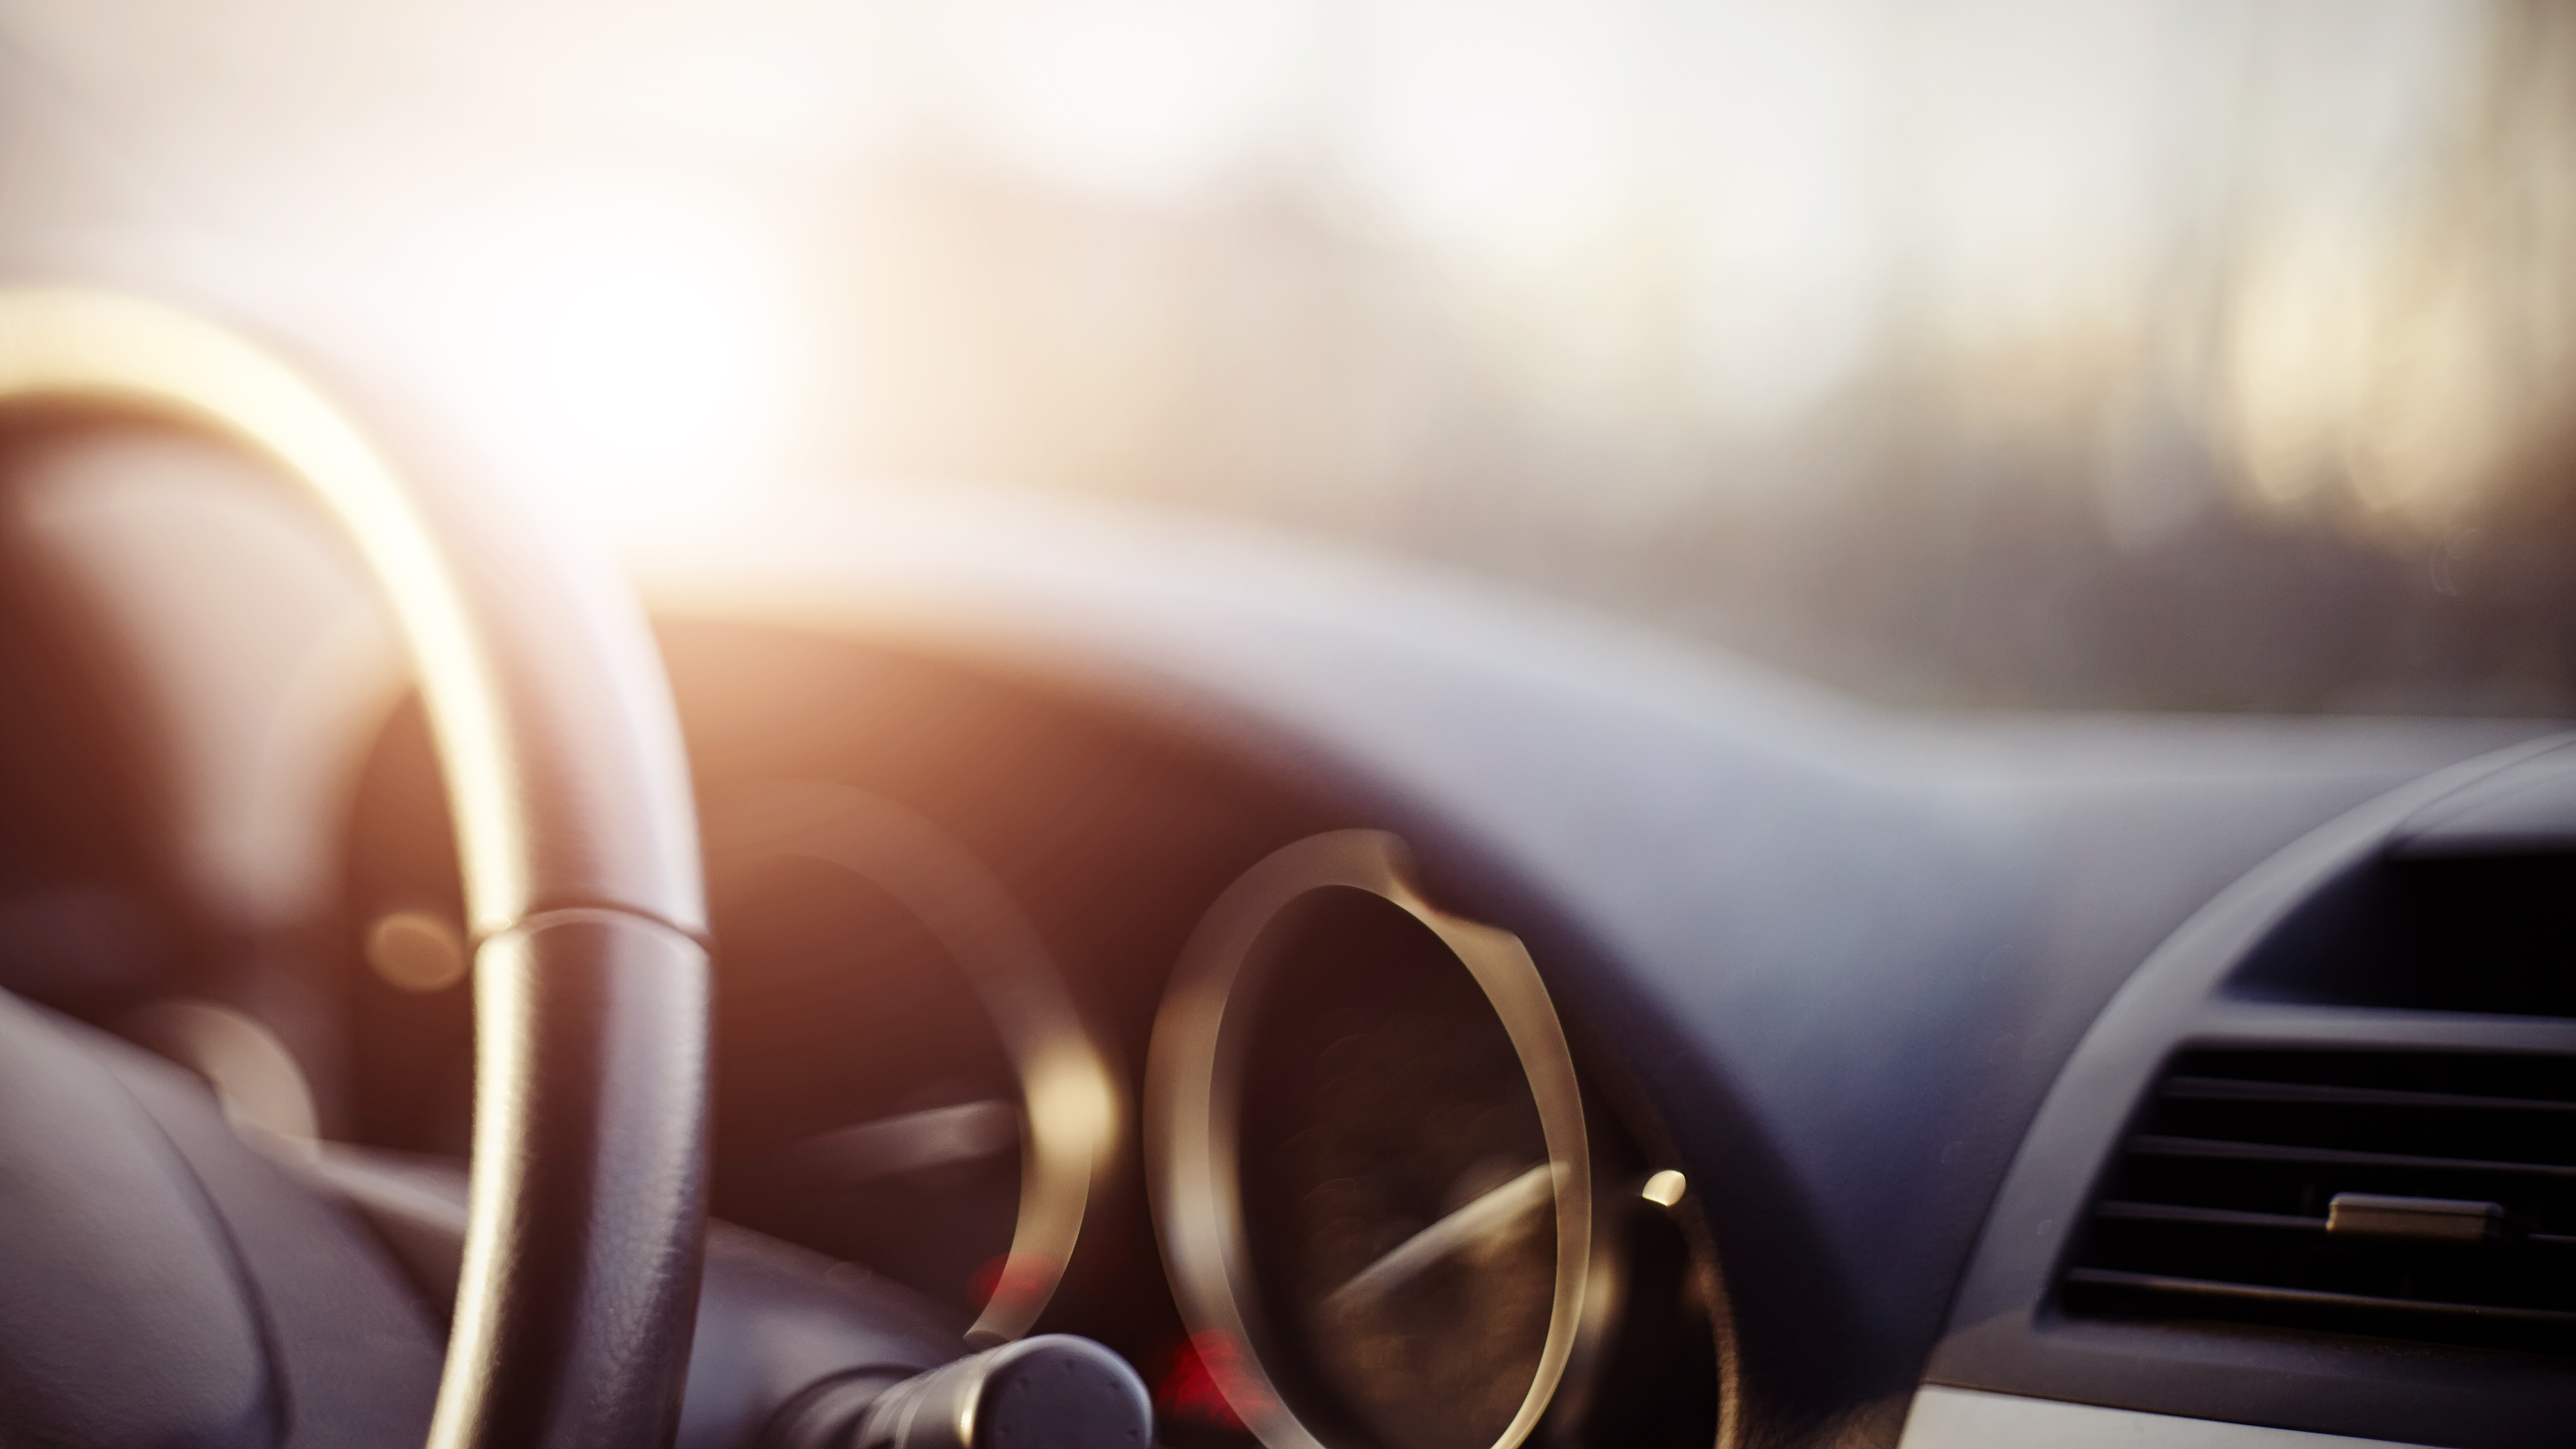 The steering wheel and dashboard of a car